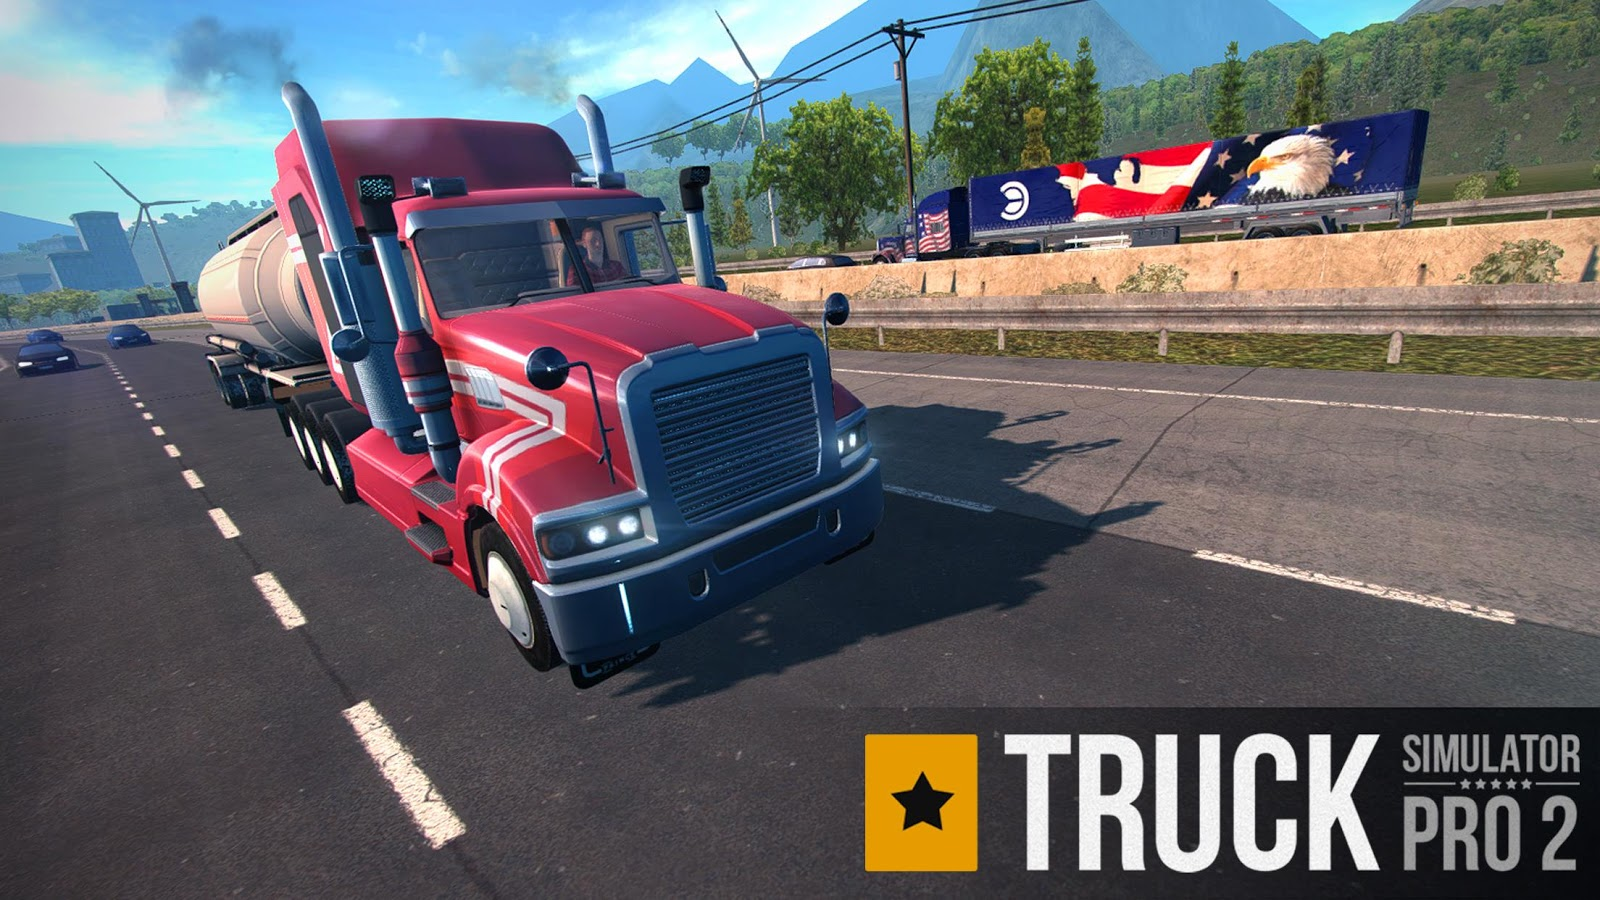 Download Truck Simulator PRO 2 Android Game for Free